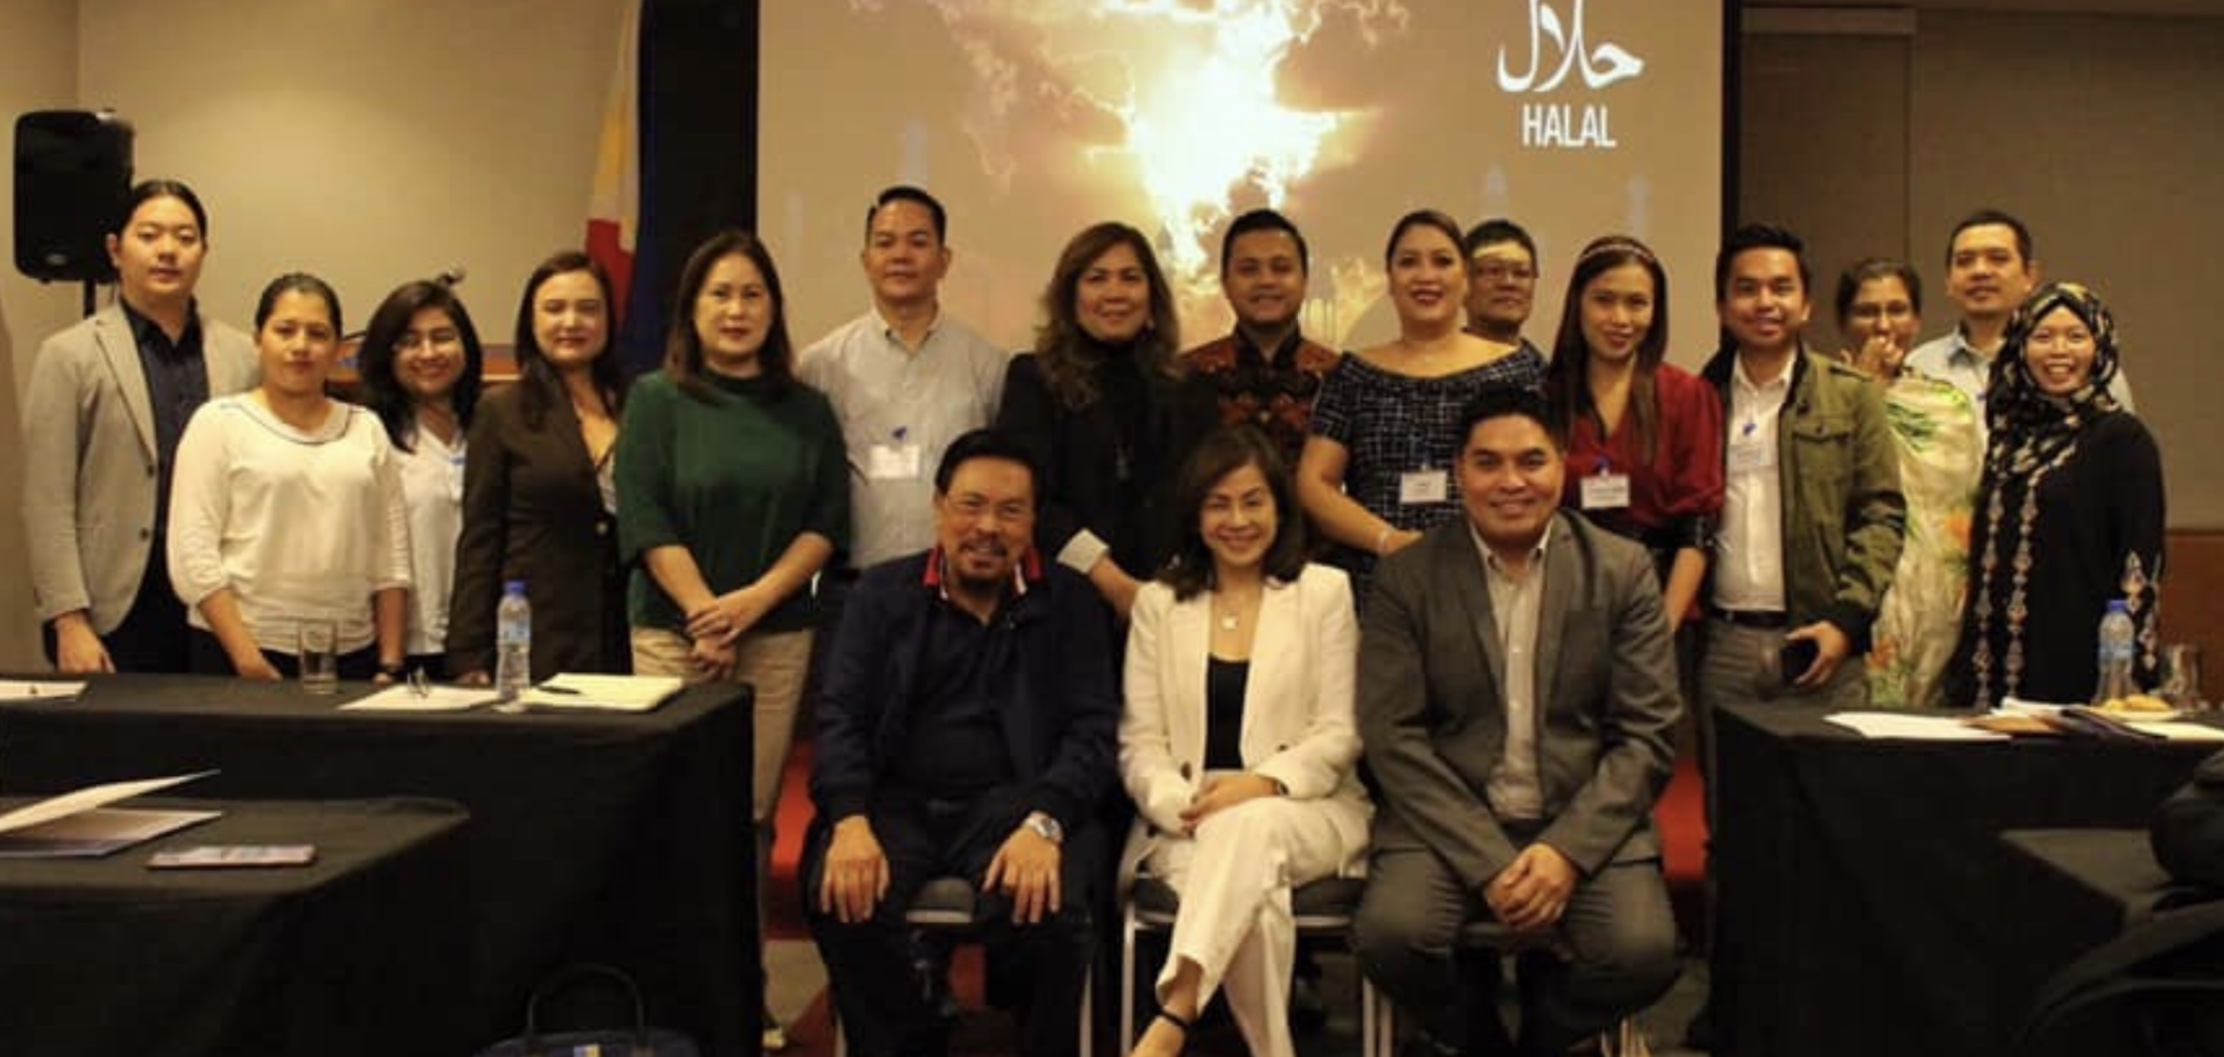 WTCMM Holds Trade Forums on Halal Economy and the Design Industry